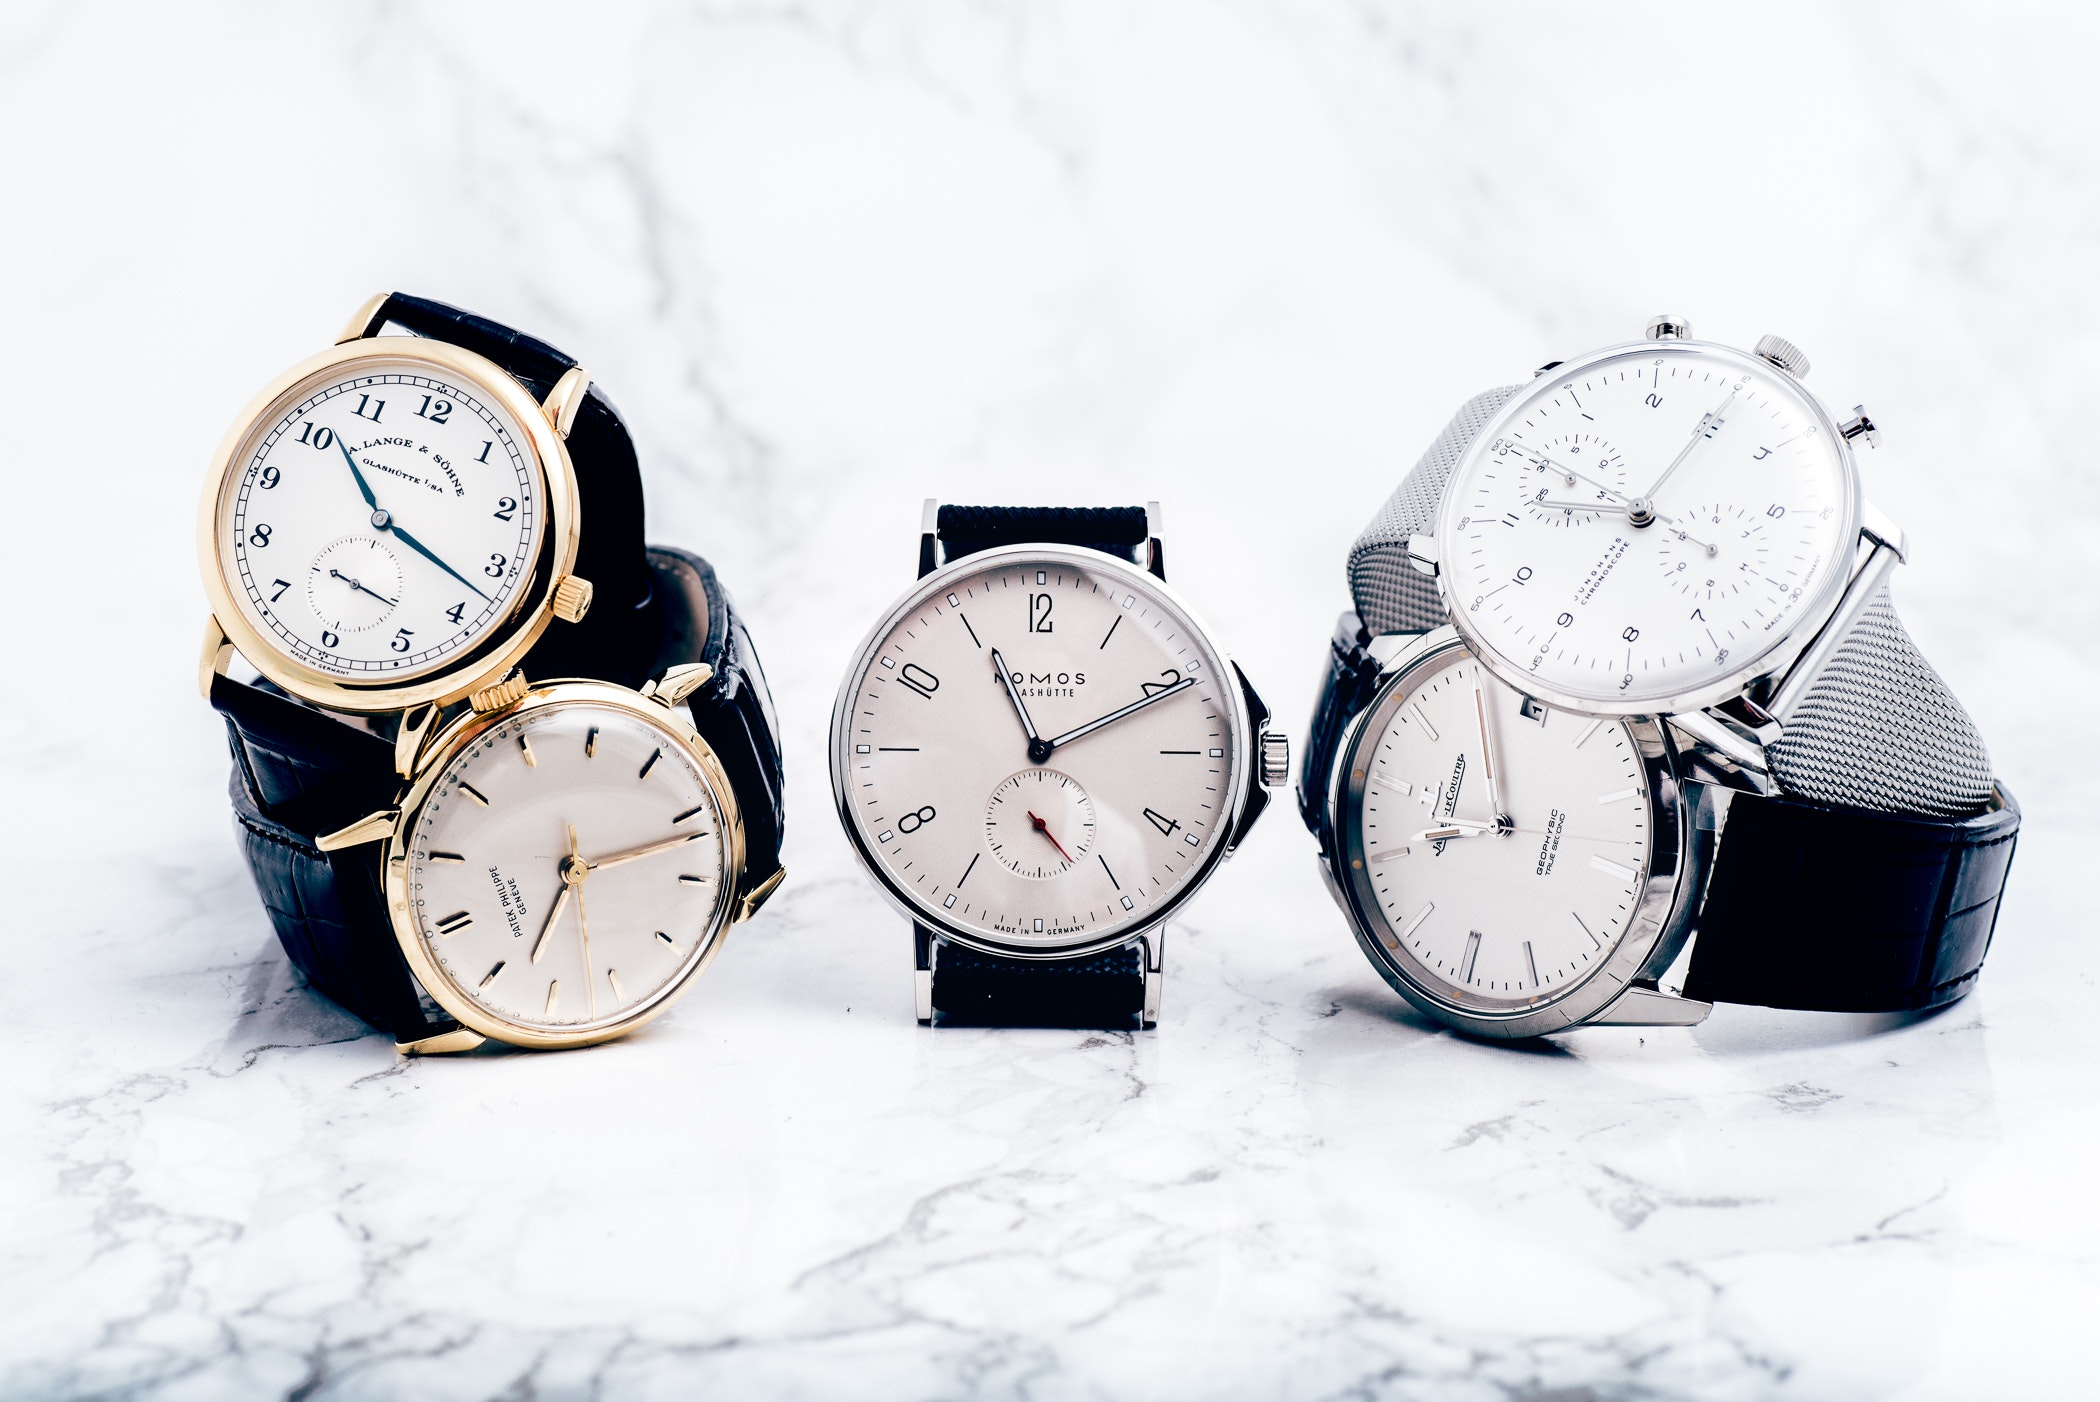 5 minimalist watches that you should know